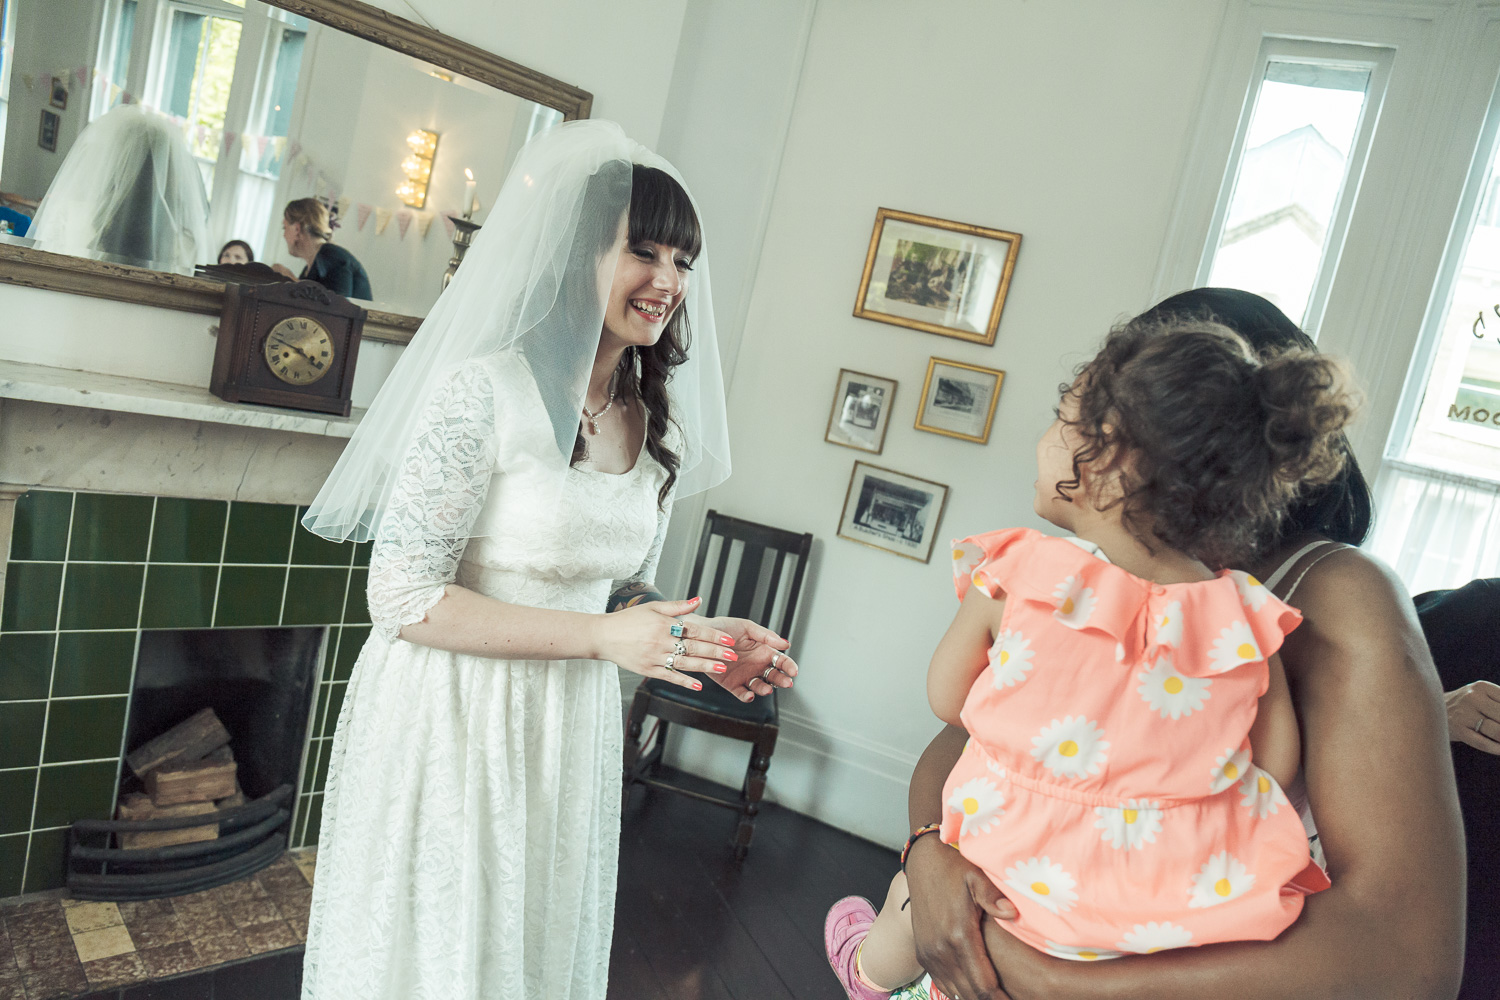 burgh-house-hampstead-north-london-wedding-0270.jpg